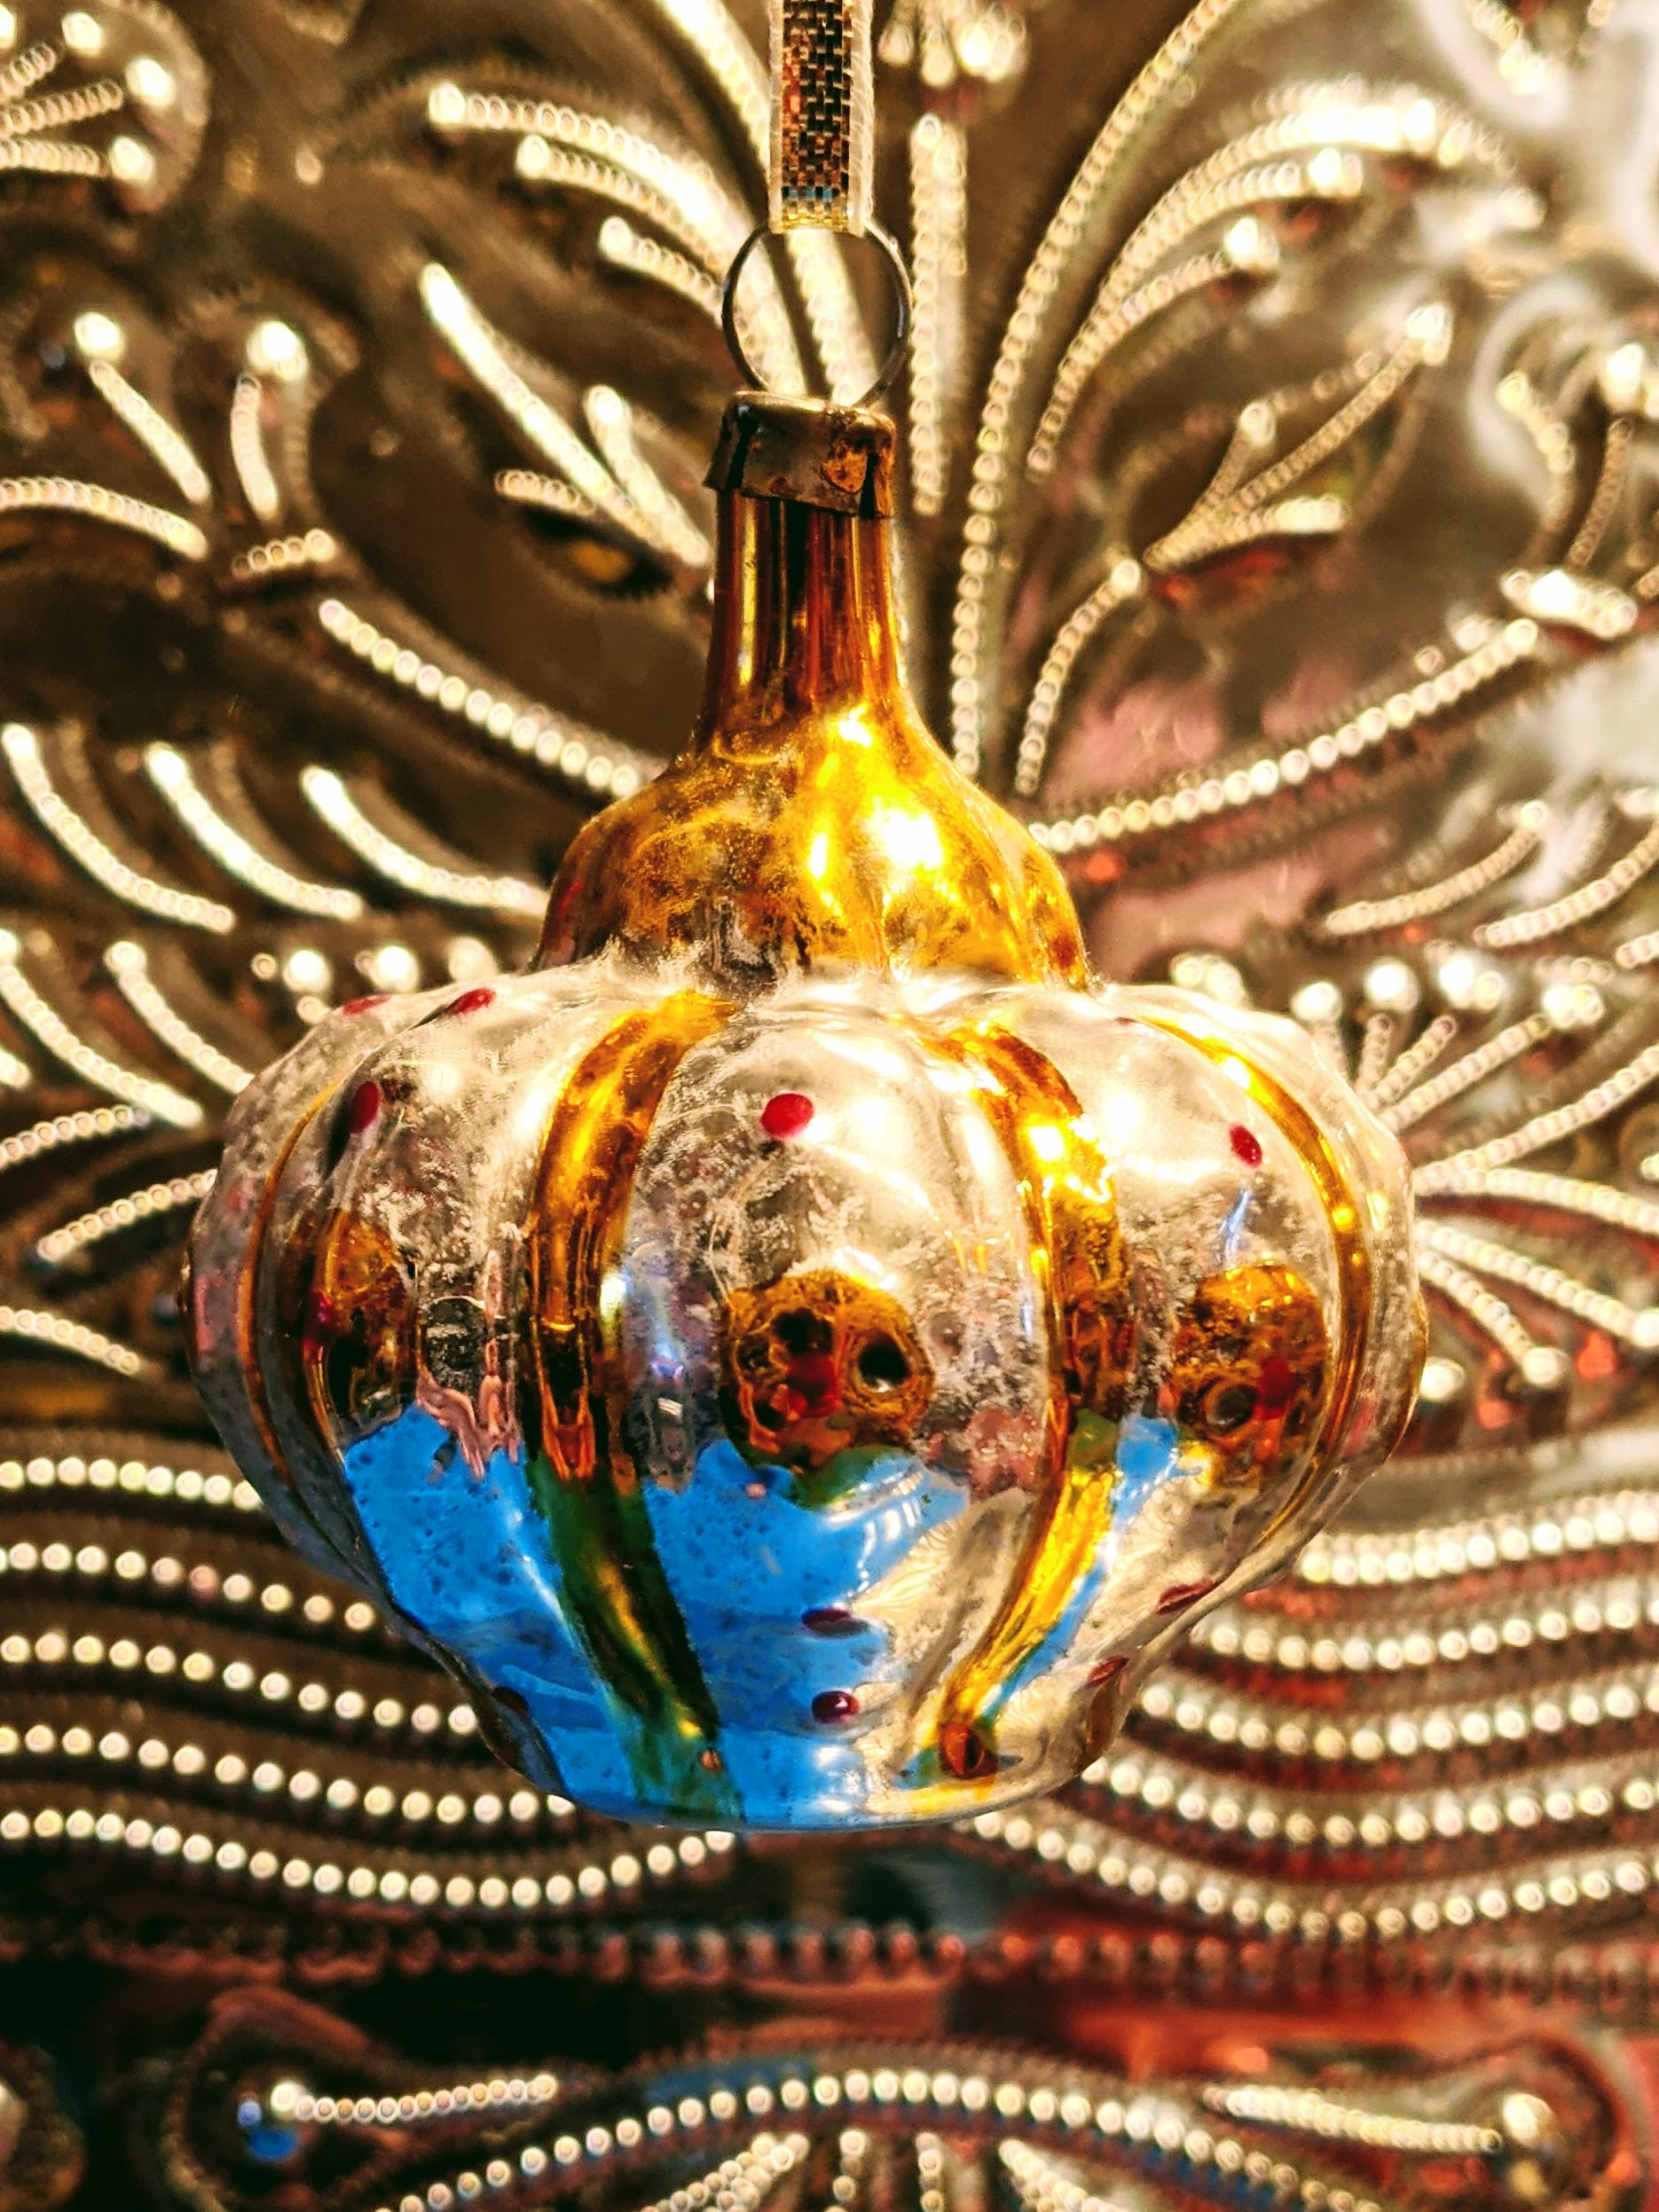 Traditional hand blown, painted glass decoration from Lauscha Germany.  This German mouth blown and lovingly hand painted Crown decoration will bring some Christmas splendor to your house and tree.  Size 6 x 6 cm  Fragile, handle with care